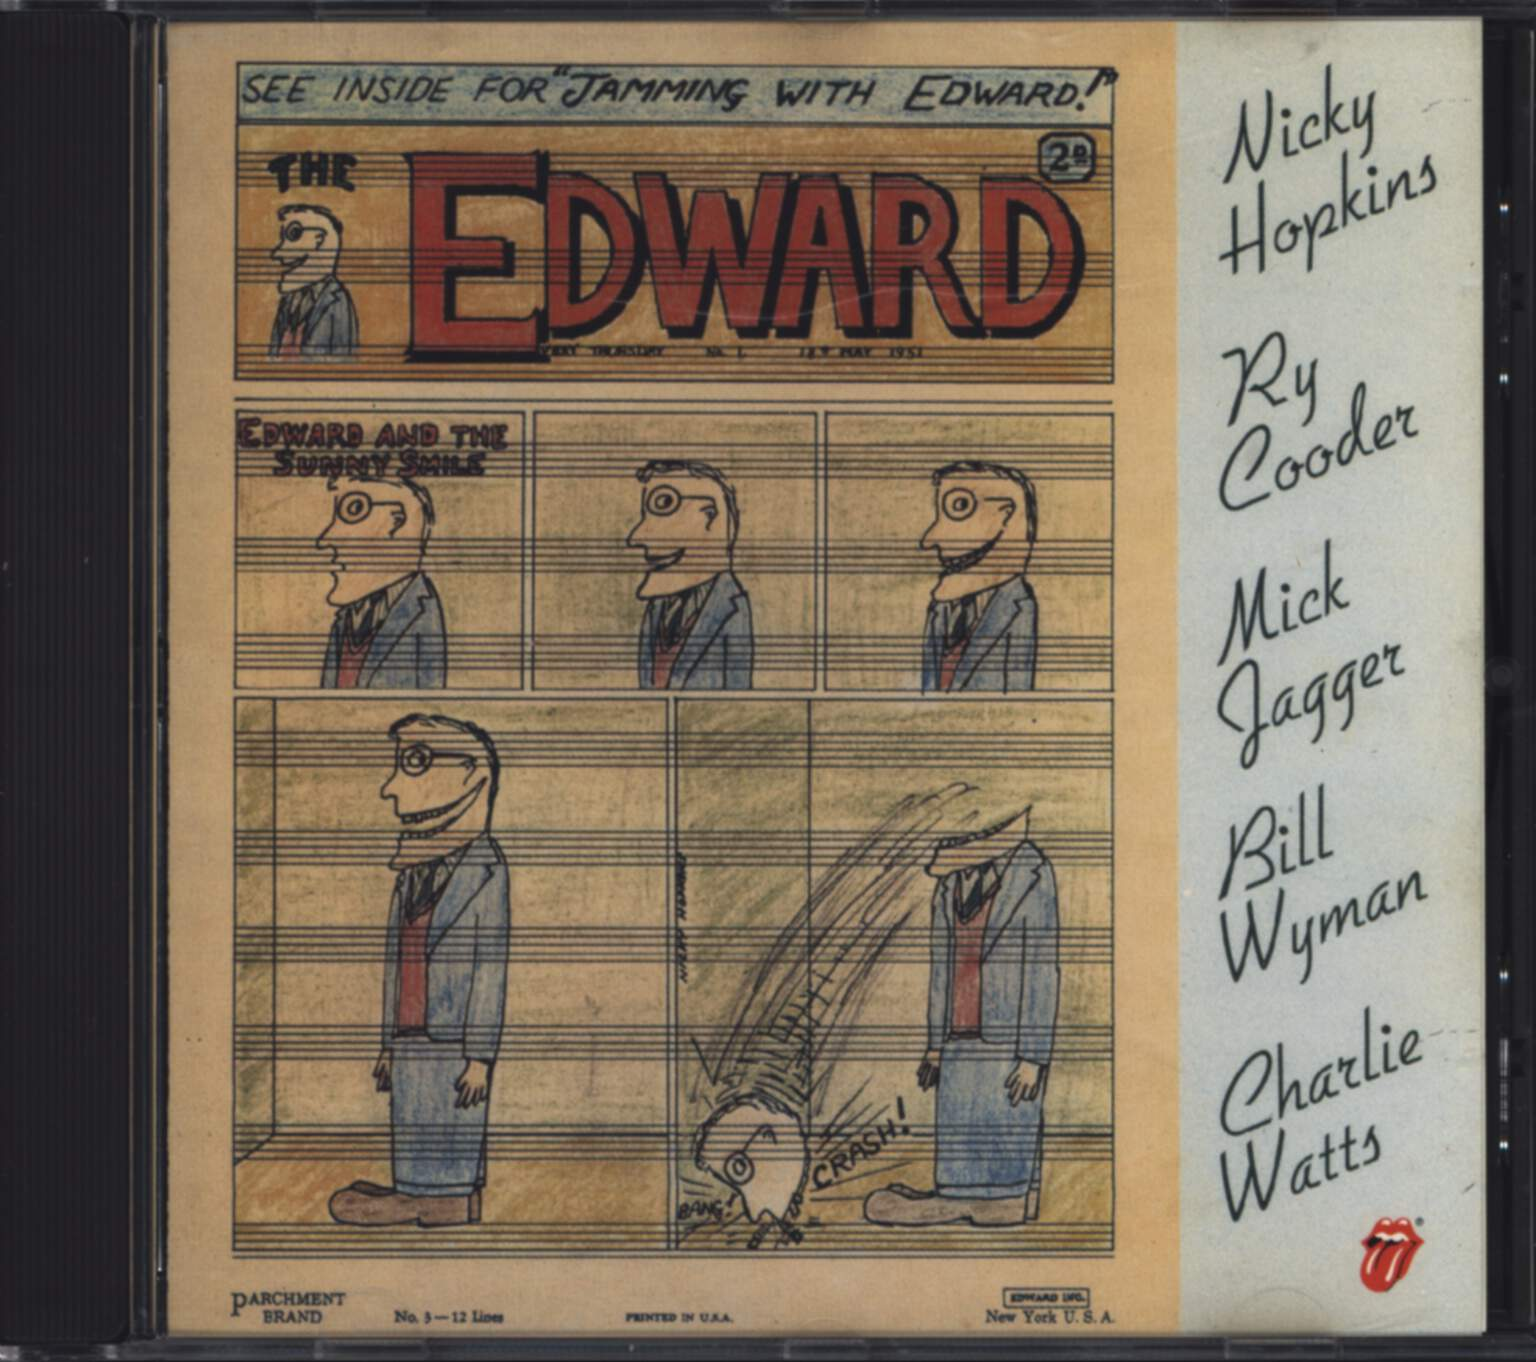 Nicky Hopkins: Jamming With Edward, CD